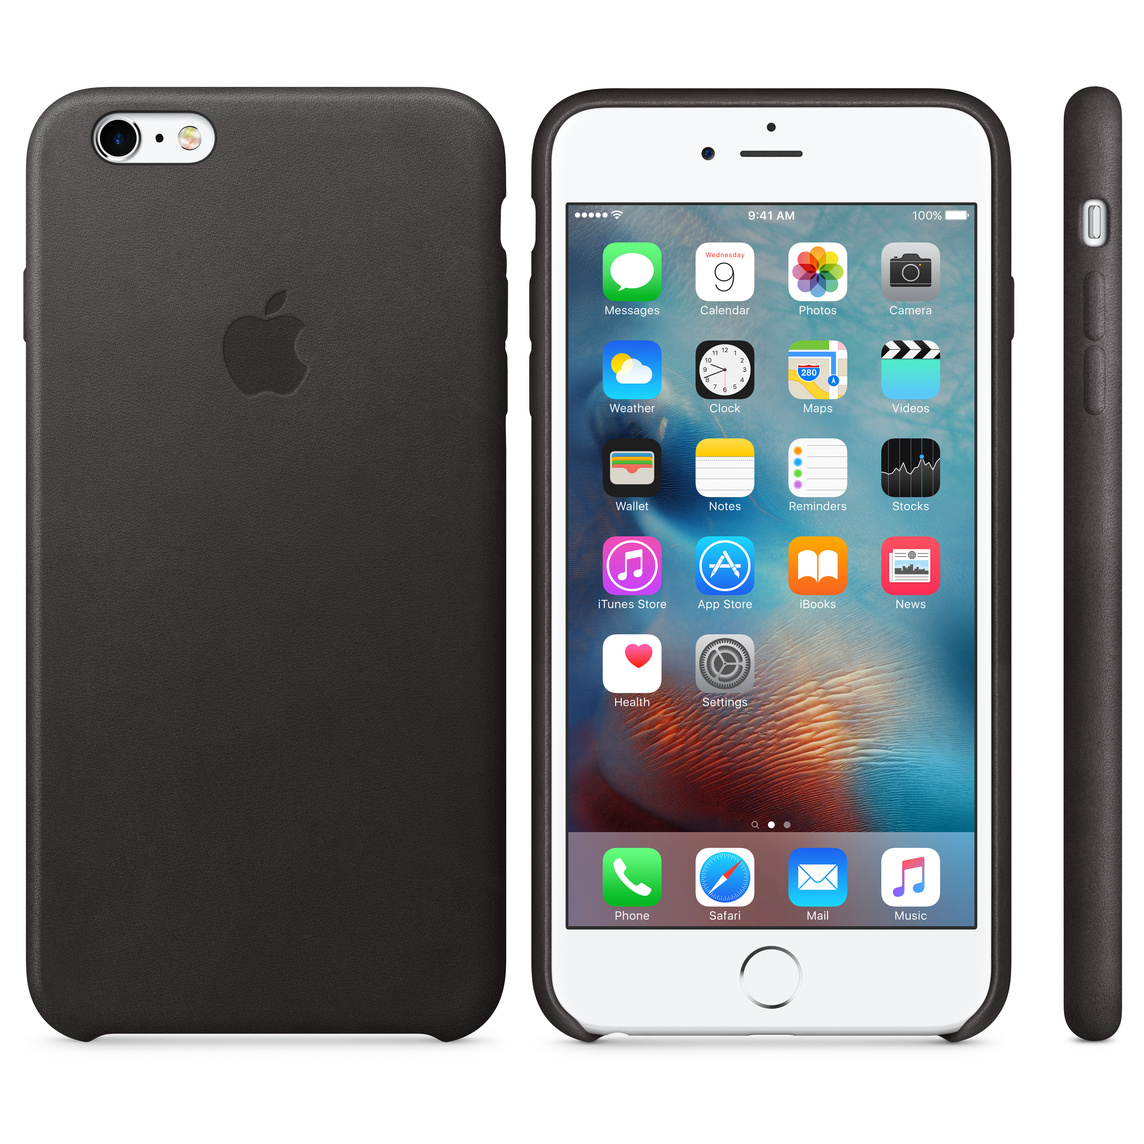 outlet store sale e2602 af2f9 iPhone 6 Plus / 6s Plus Leather Case - Black